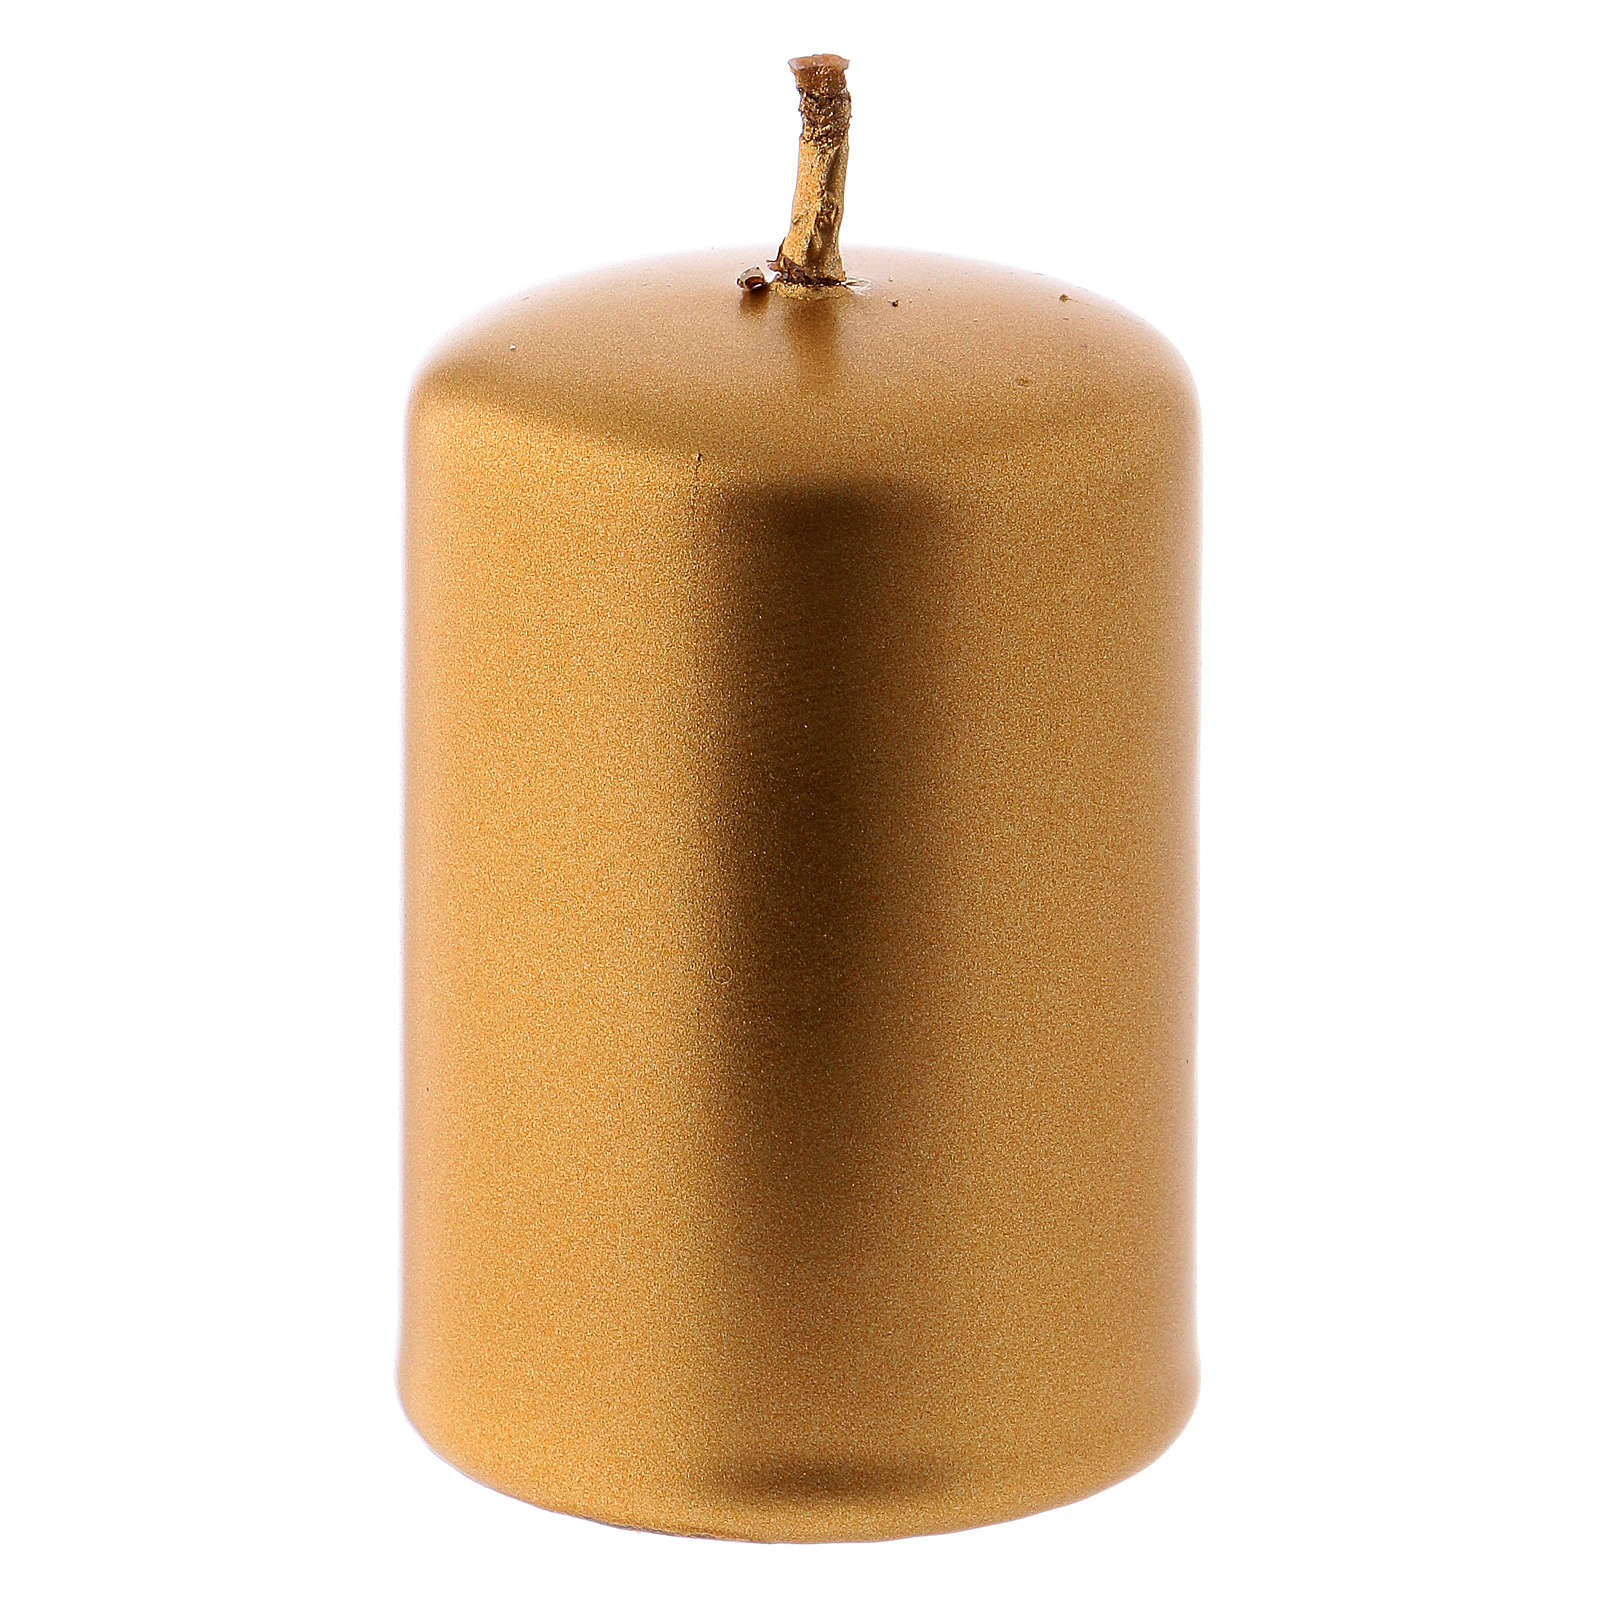 Metallic Gold Candle for Christmas 4x6 cm 3